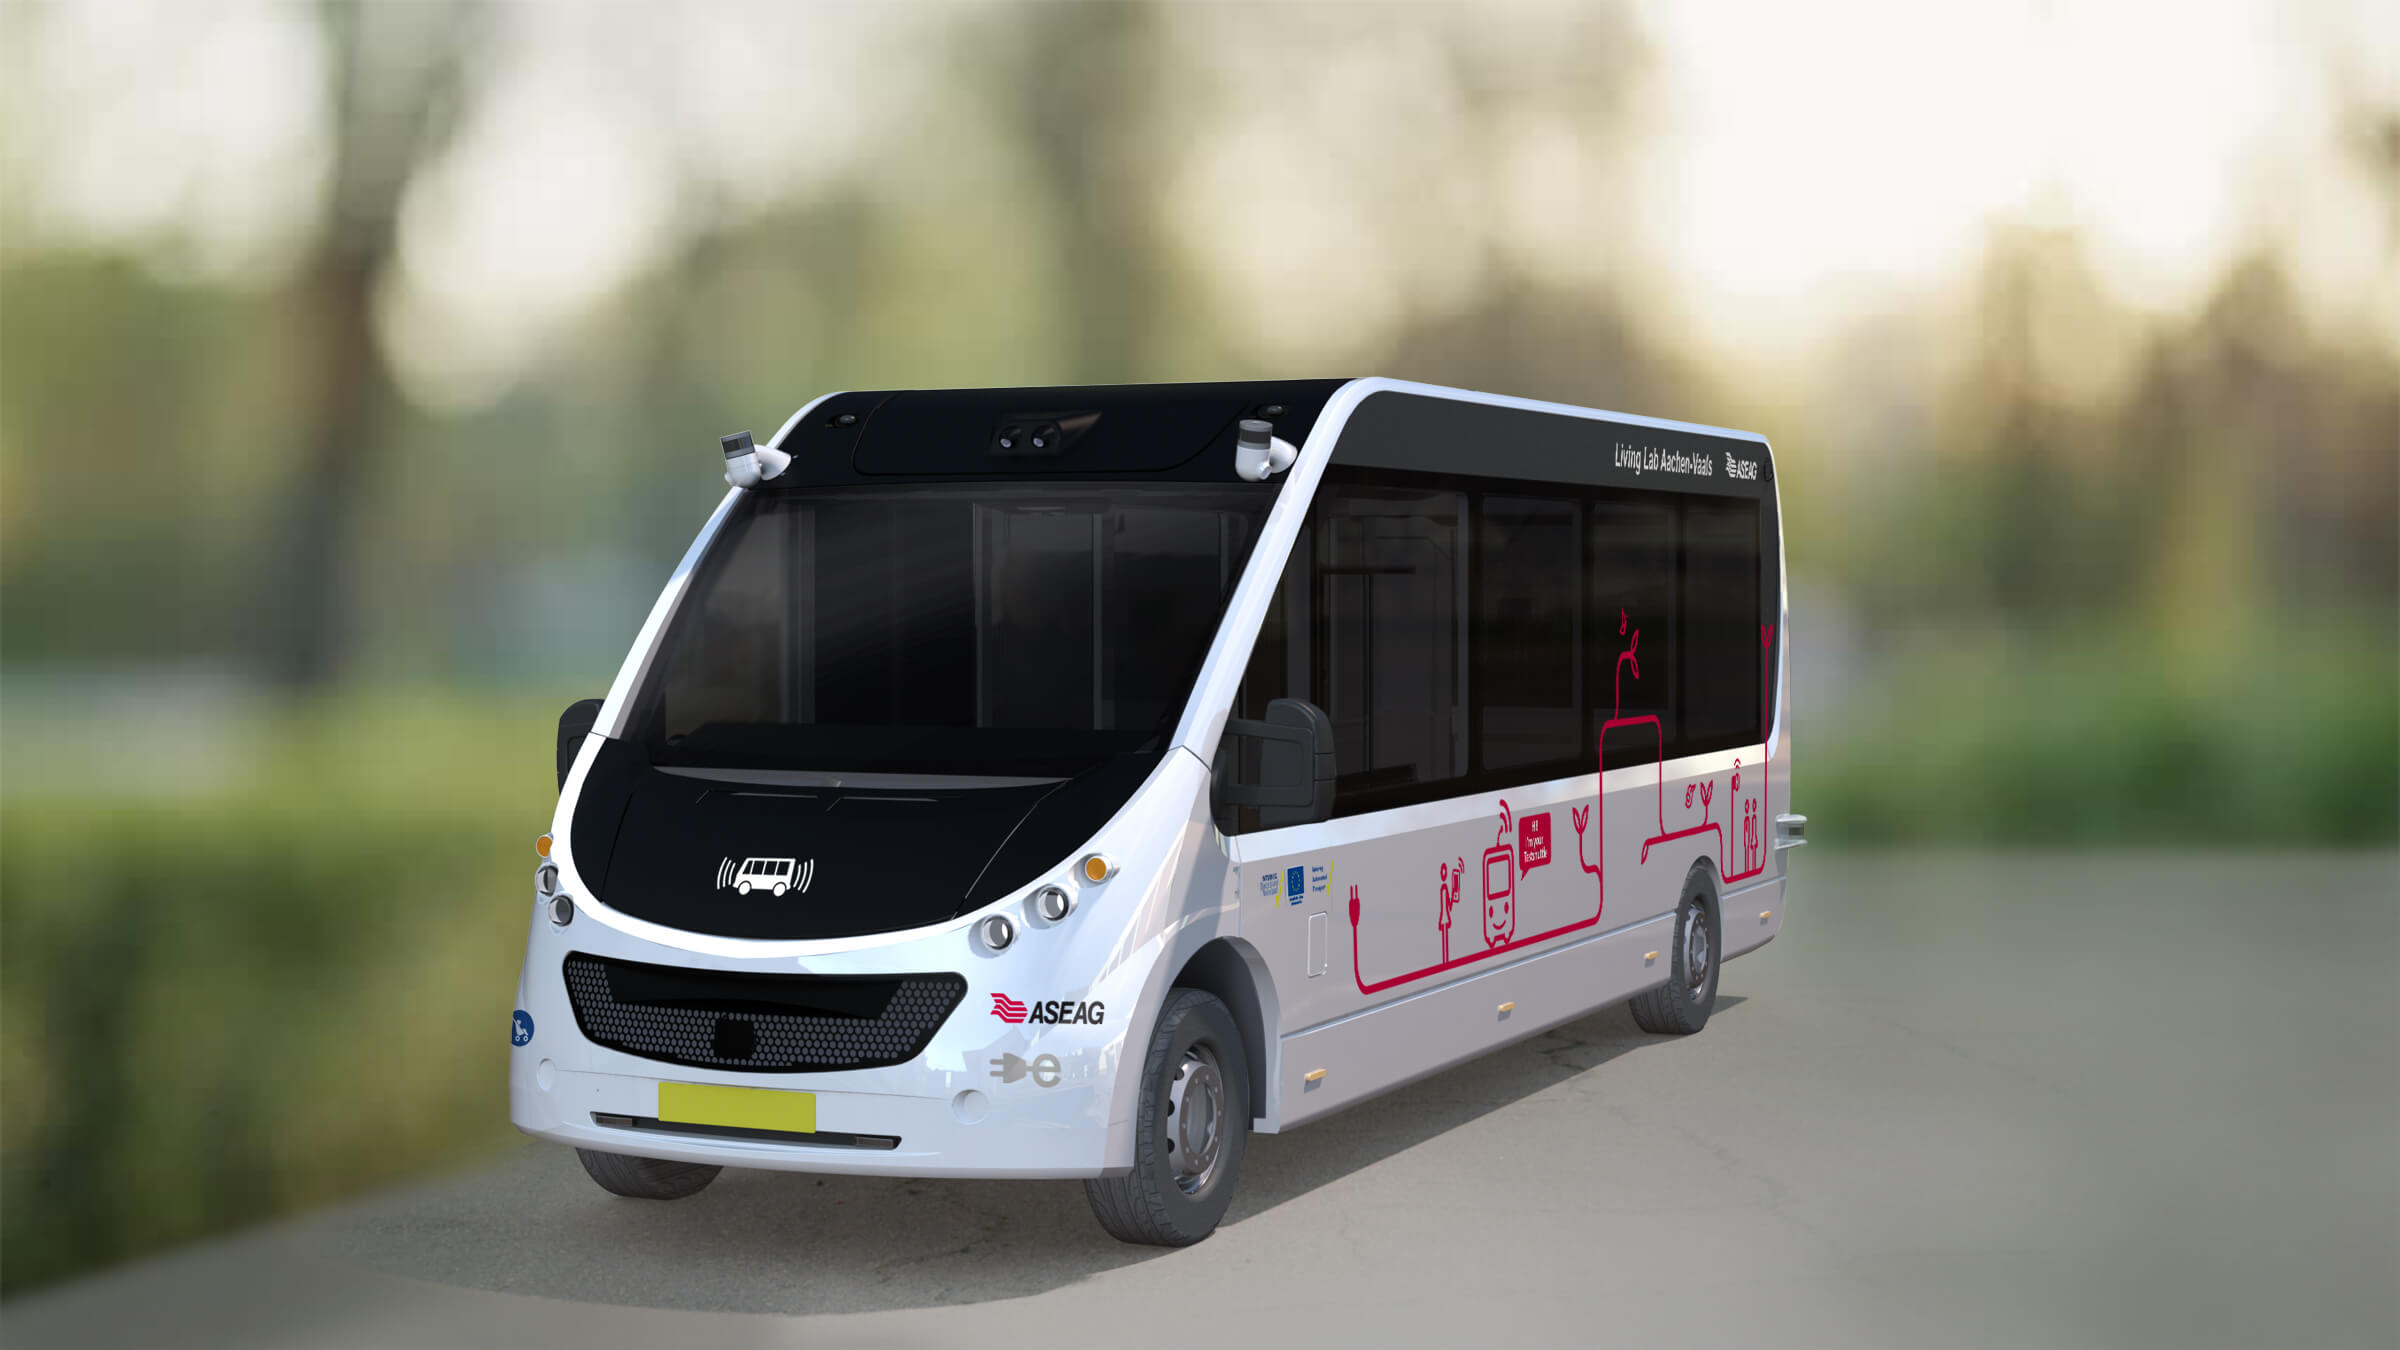 Render Mission autonome bus